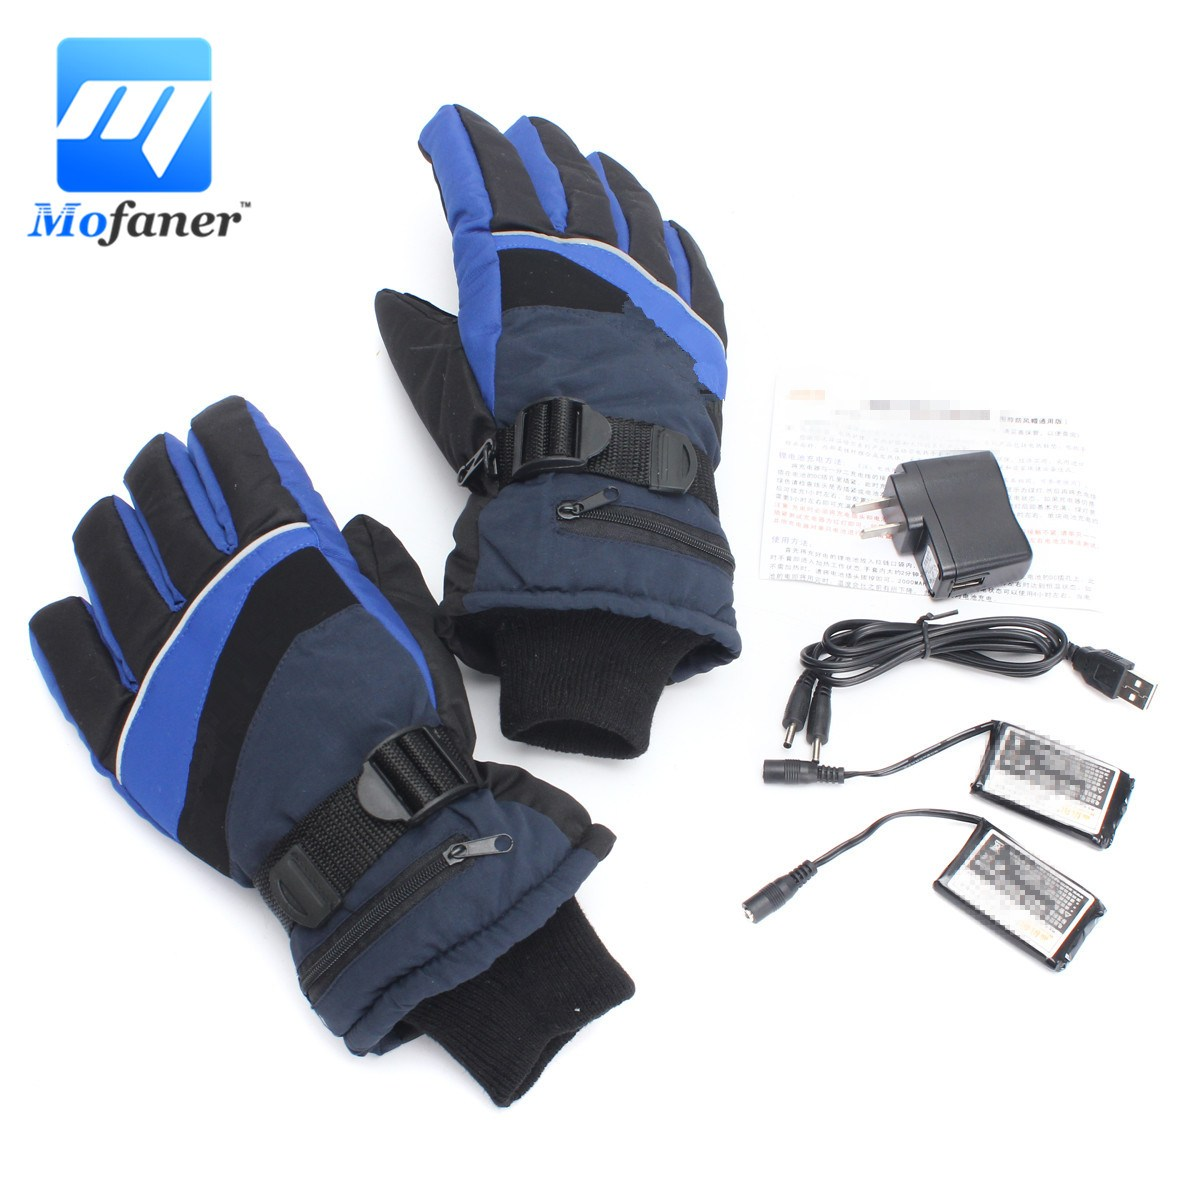 Mofaner Waterproof Motorcycle Outdoor Electric Heated Gloves Snowboarding Work Winter Gloves Hands Warmer Rechargeable Battery L 1 pair 4000mah rechargeable battery with smart switch on off electric heated warm glove winter outdoor work ski warmer gloves